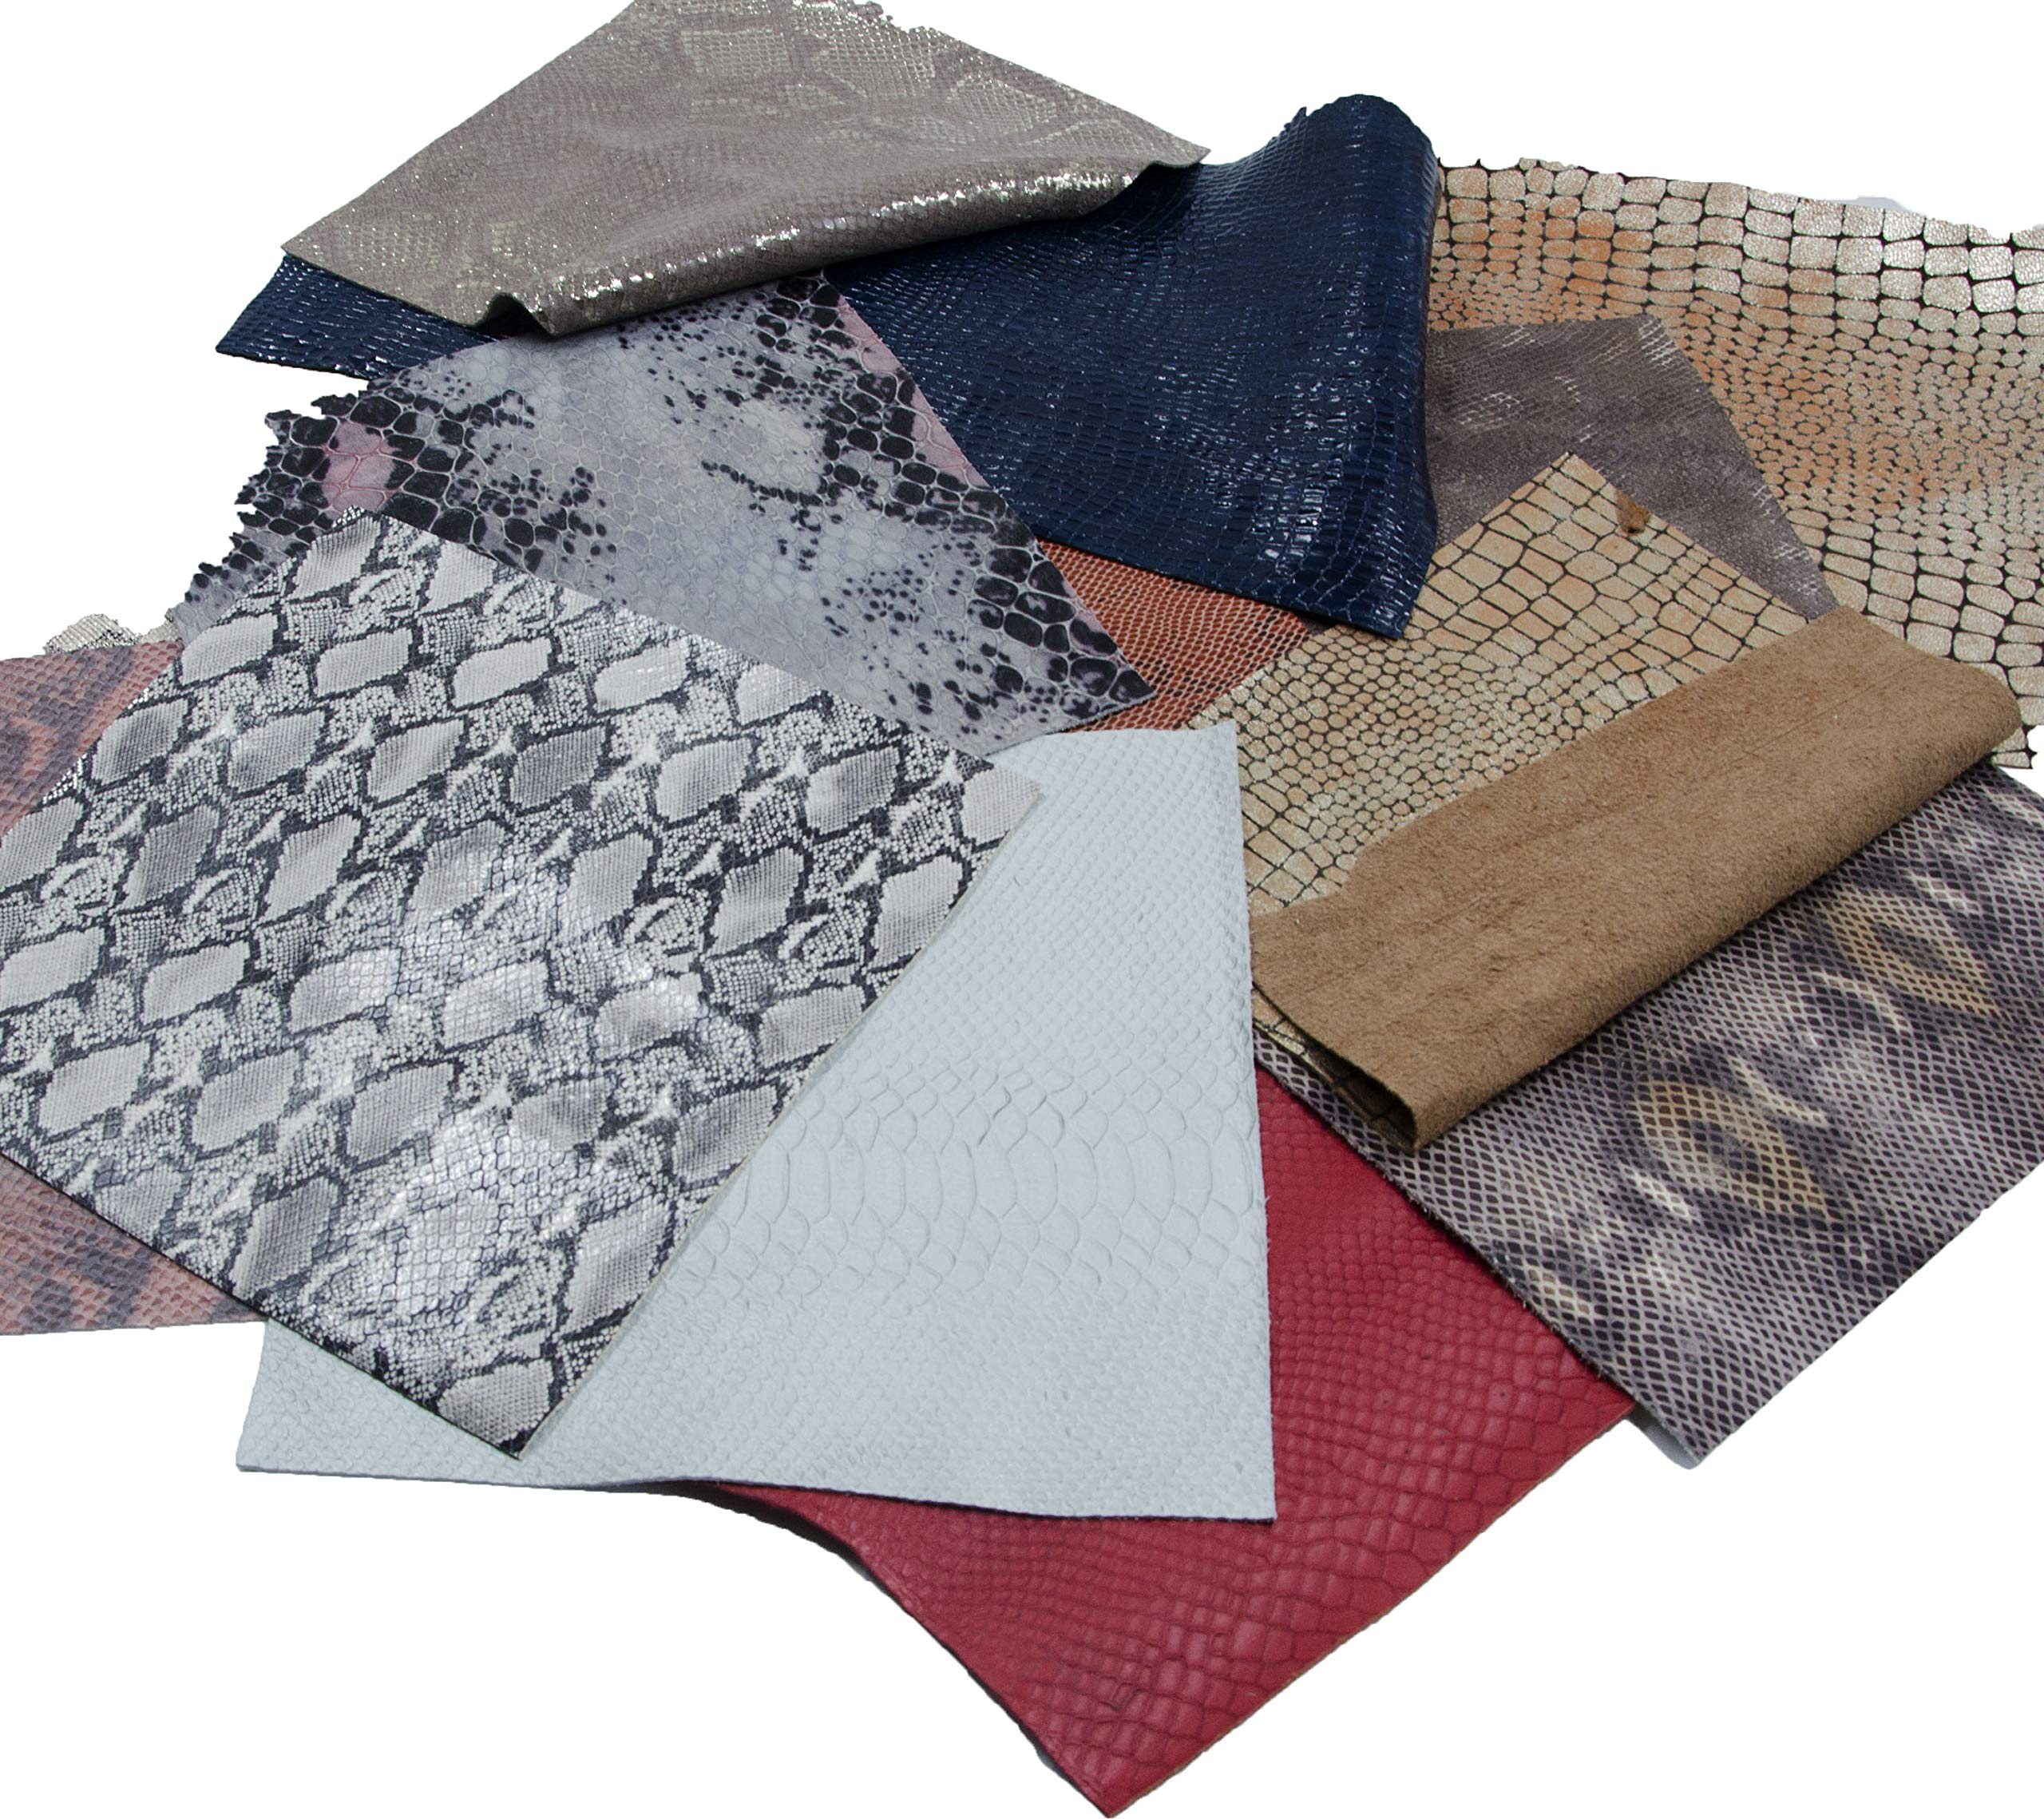 Mardili Printed and Embossed Upholstery Leather Scraps,2LBs Large Pieces,Square(10''10'') and Irrgular Size by Mardili